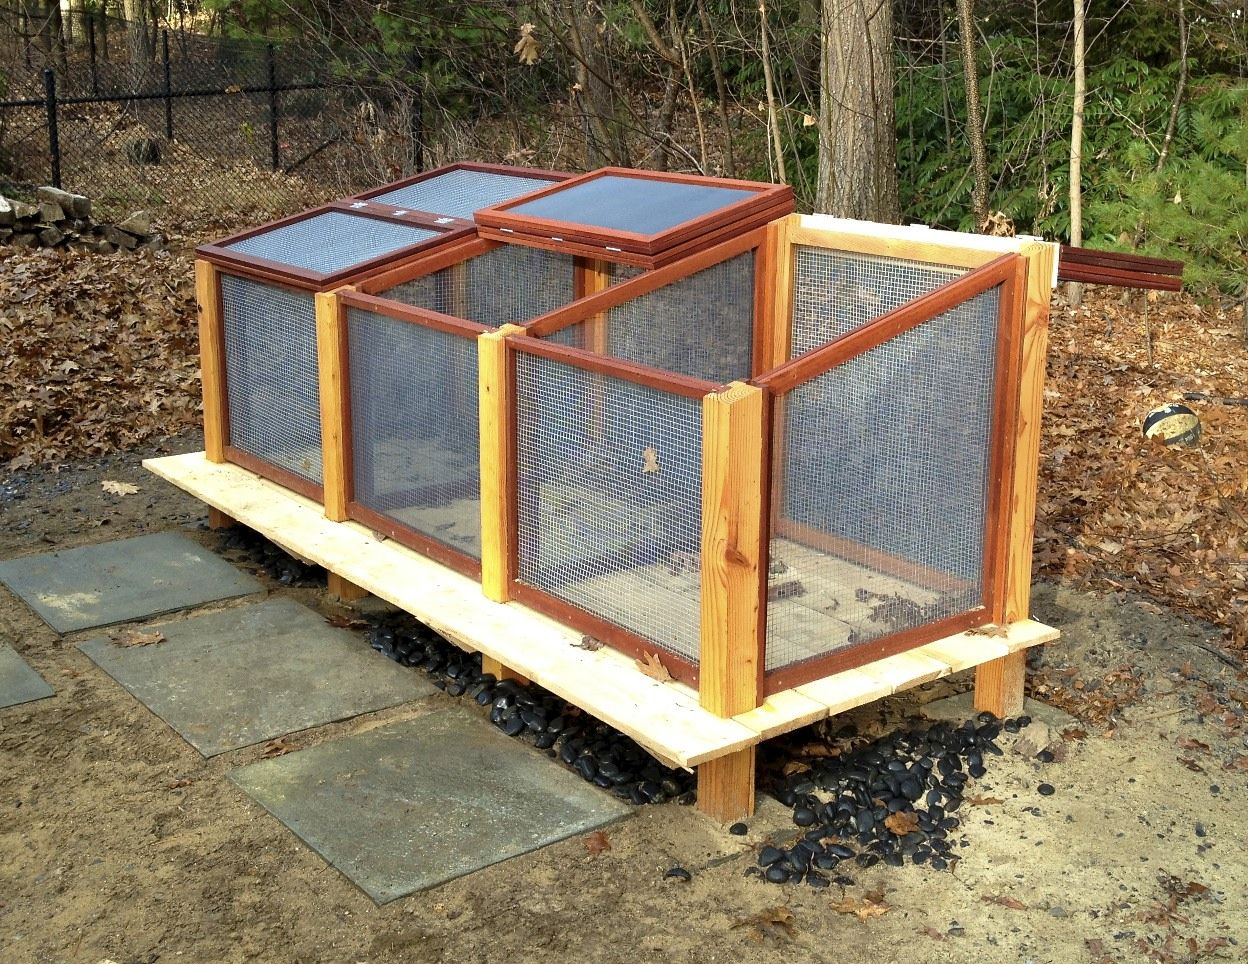 Diy Compost Bin Plans Compost Bin With Removable Mesh Screens In Front Slightly